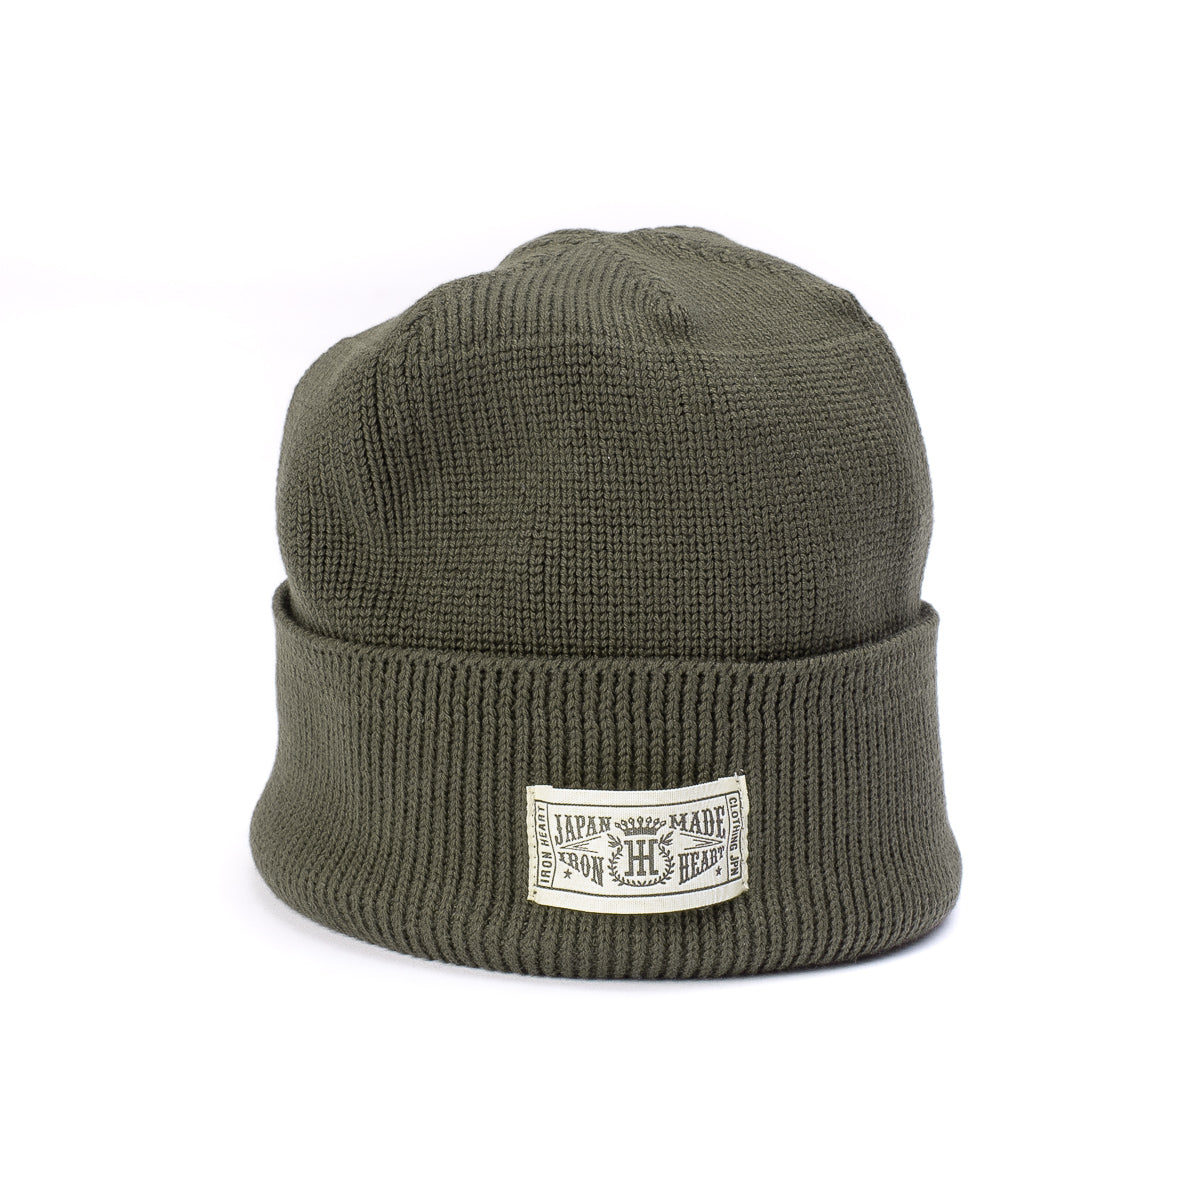 IHG-081 - Cotton Ribbed Beanie Olive